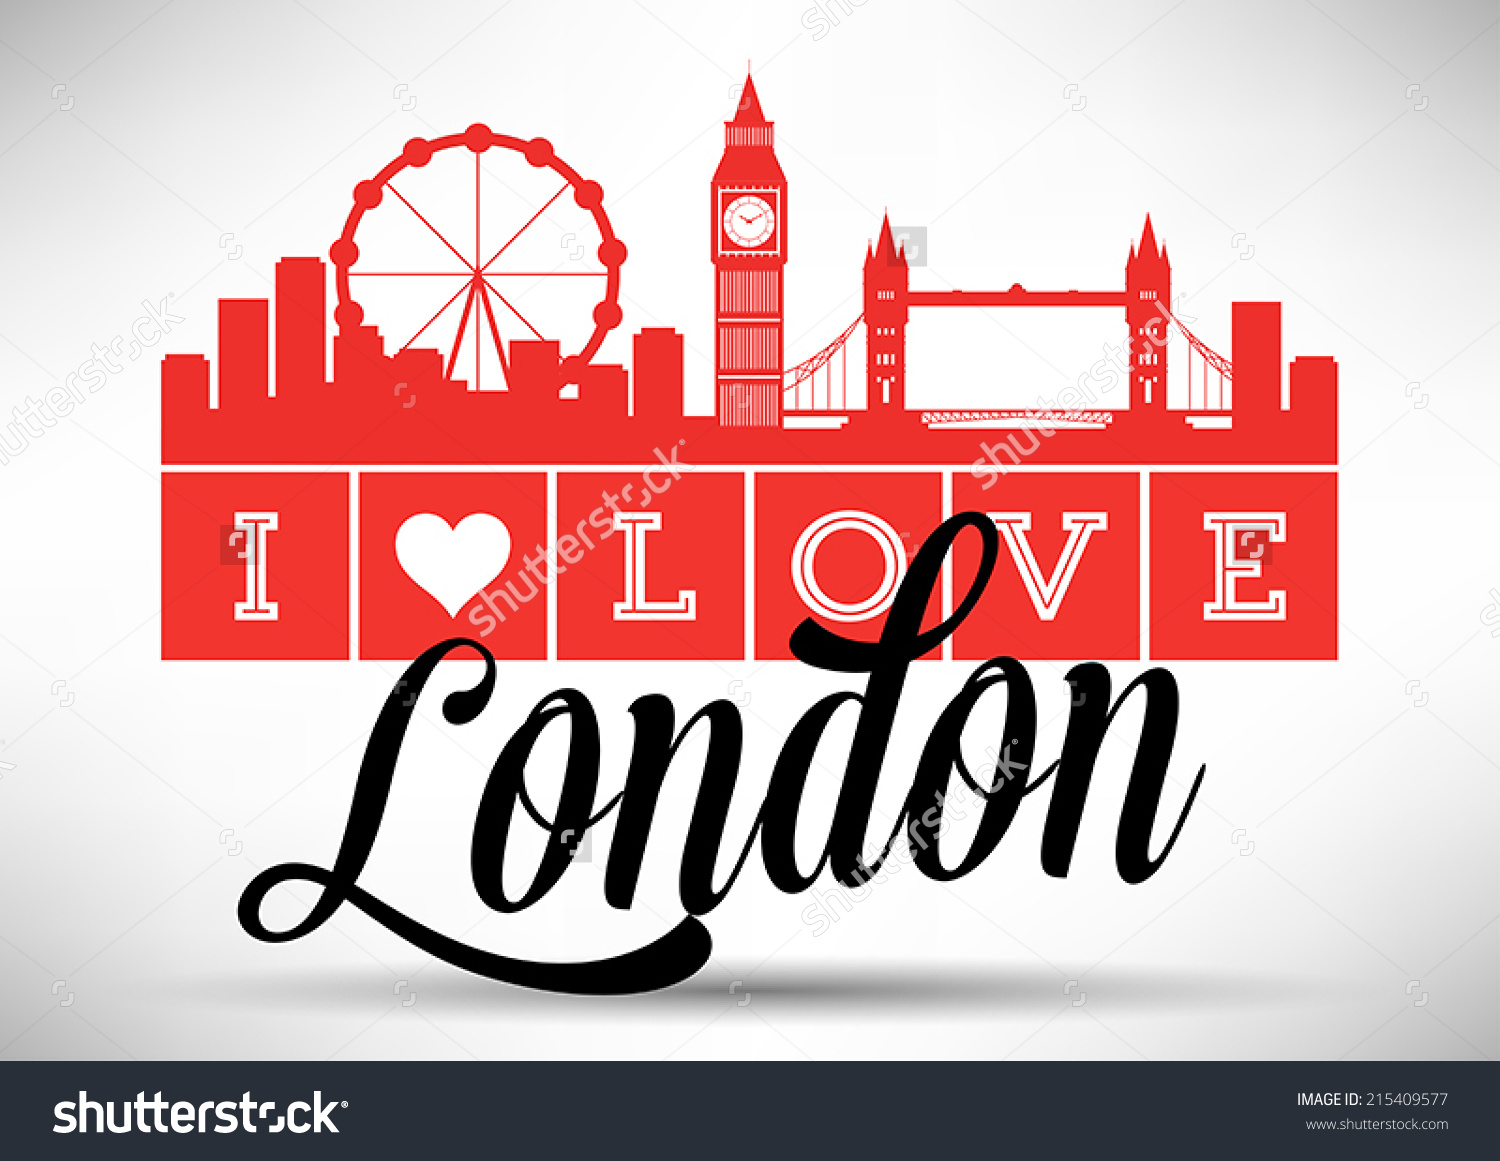 Love London Typography Design Stock Vector 215409577.